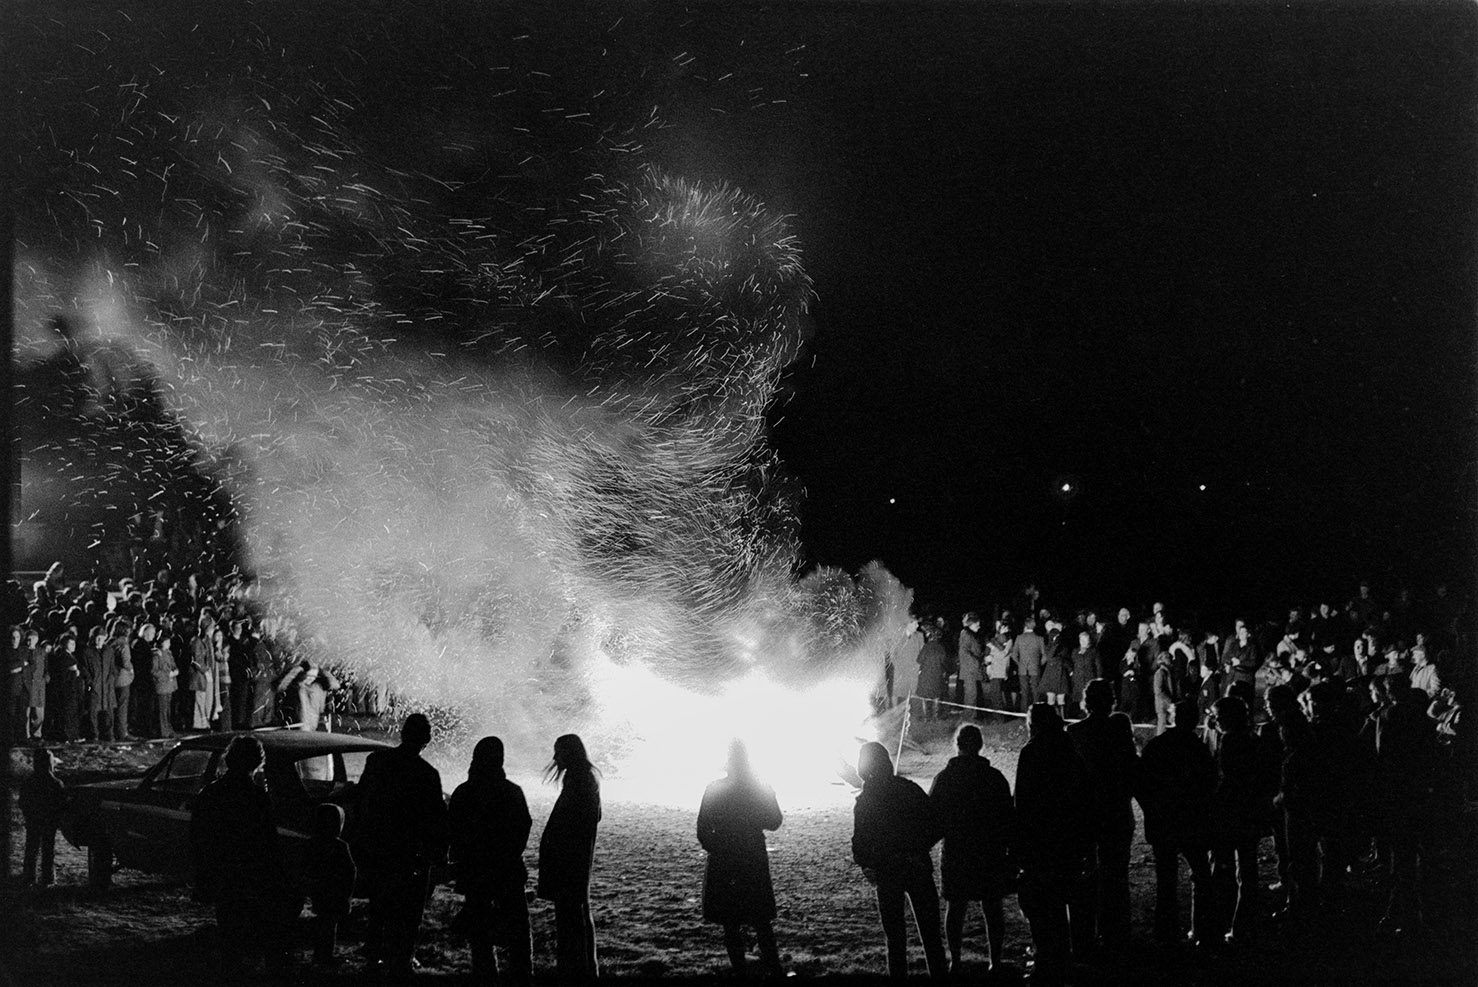 Bonfire of tyres, Hatherleigh, 7 November 1973